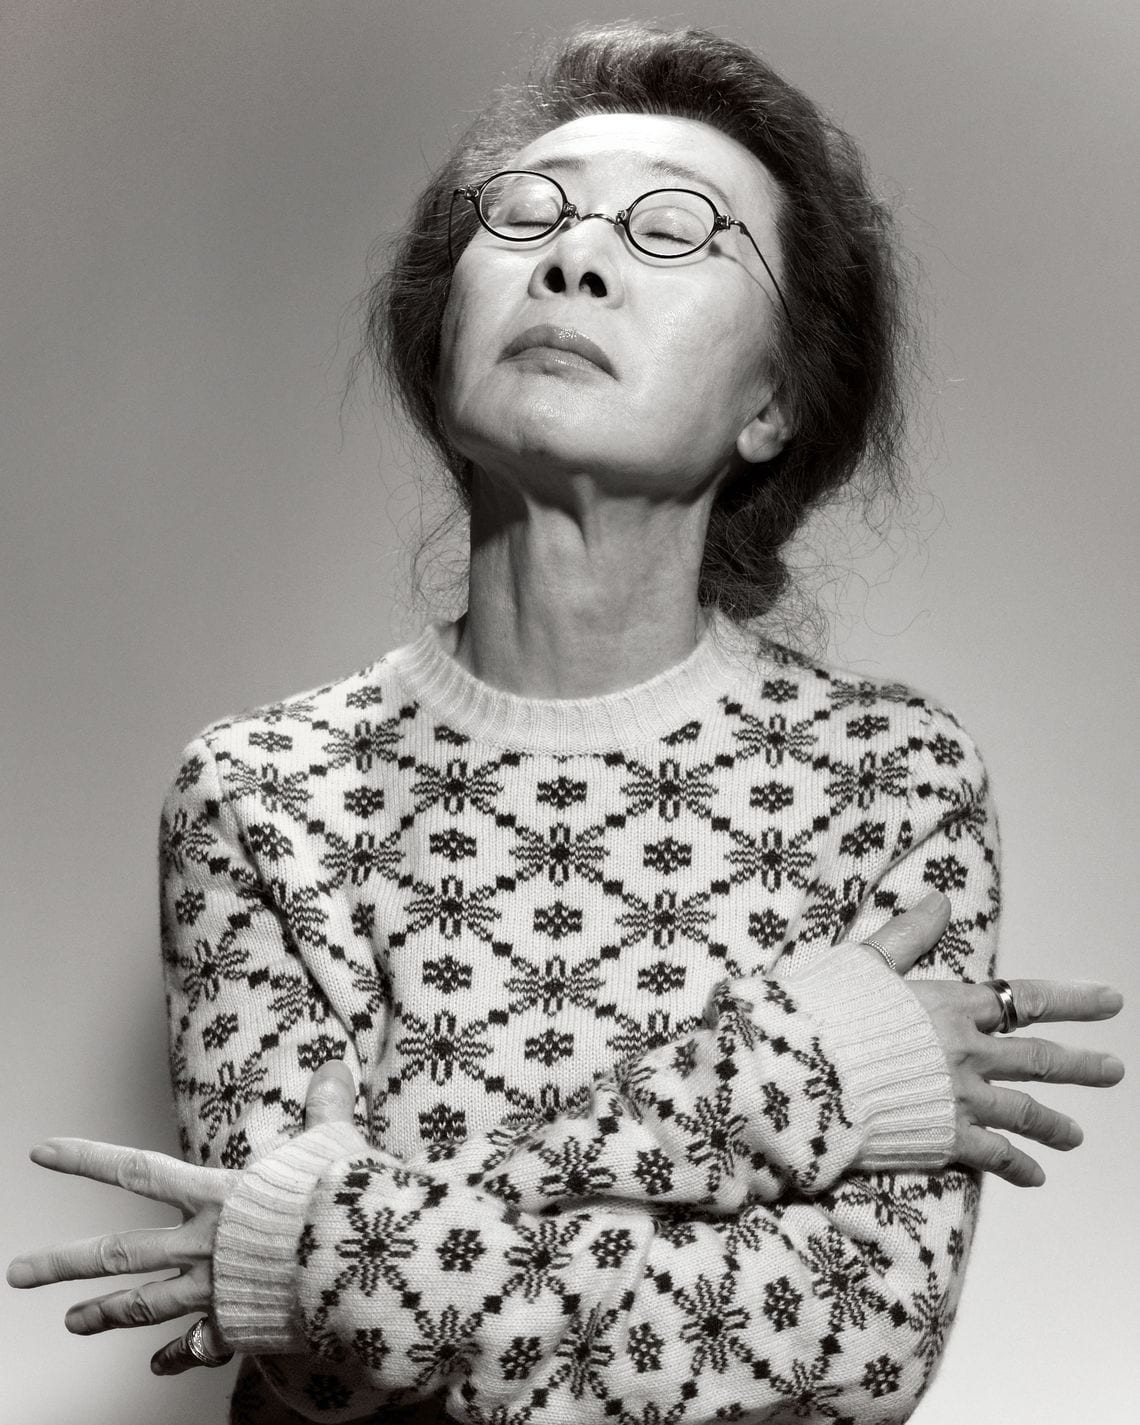 Youn Yuh-Jung in a floral sweater. Her hands are wrapped around her as she looks up to the sky, eyes closed. She looks deep in thought.